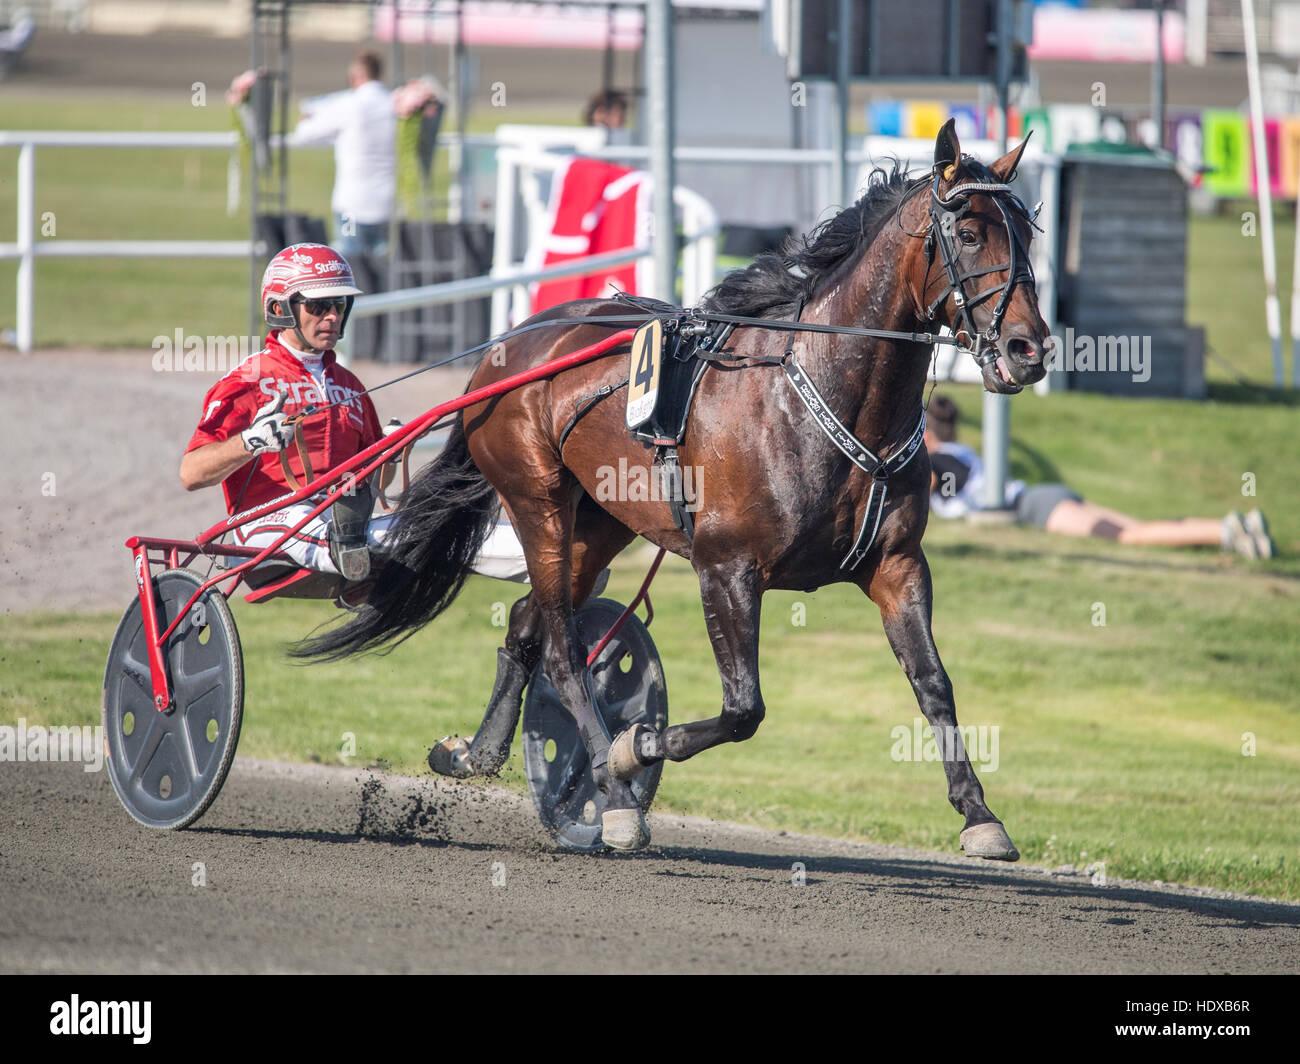 Horse Power Horses Trotter Trotting Racing Sulky Stock Photos